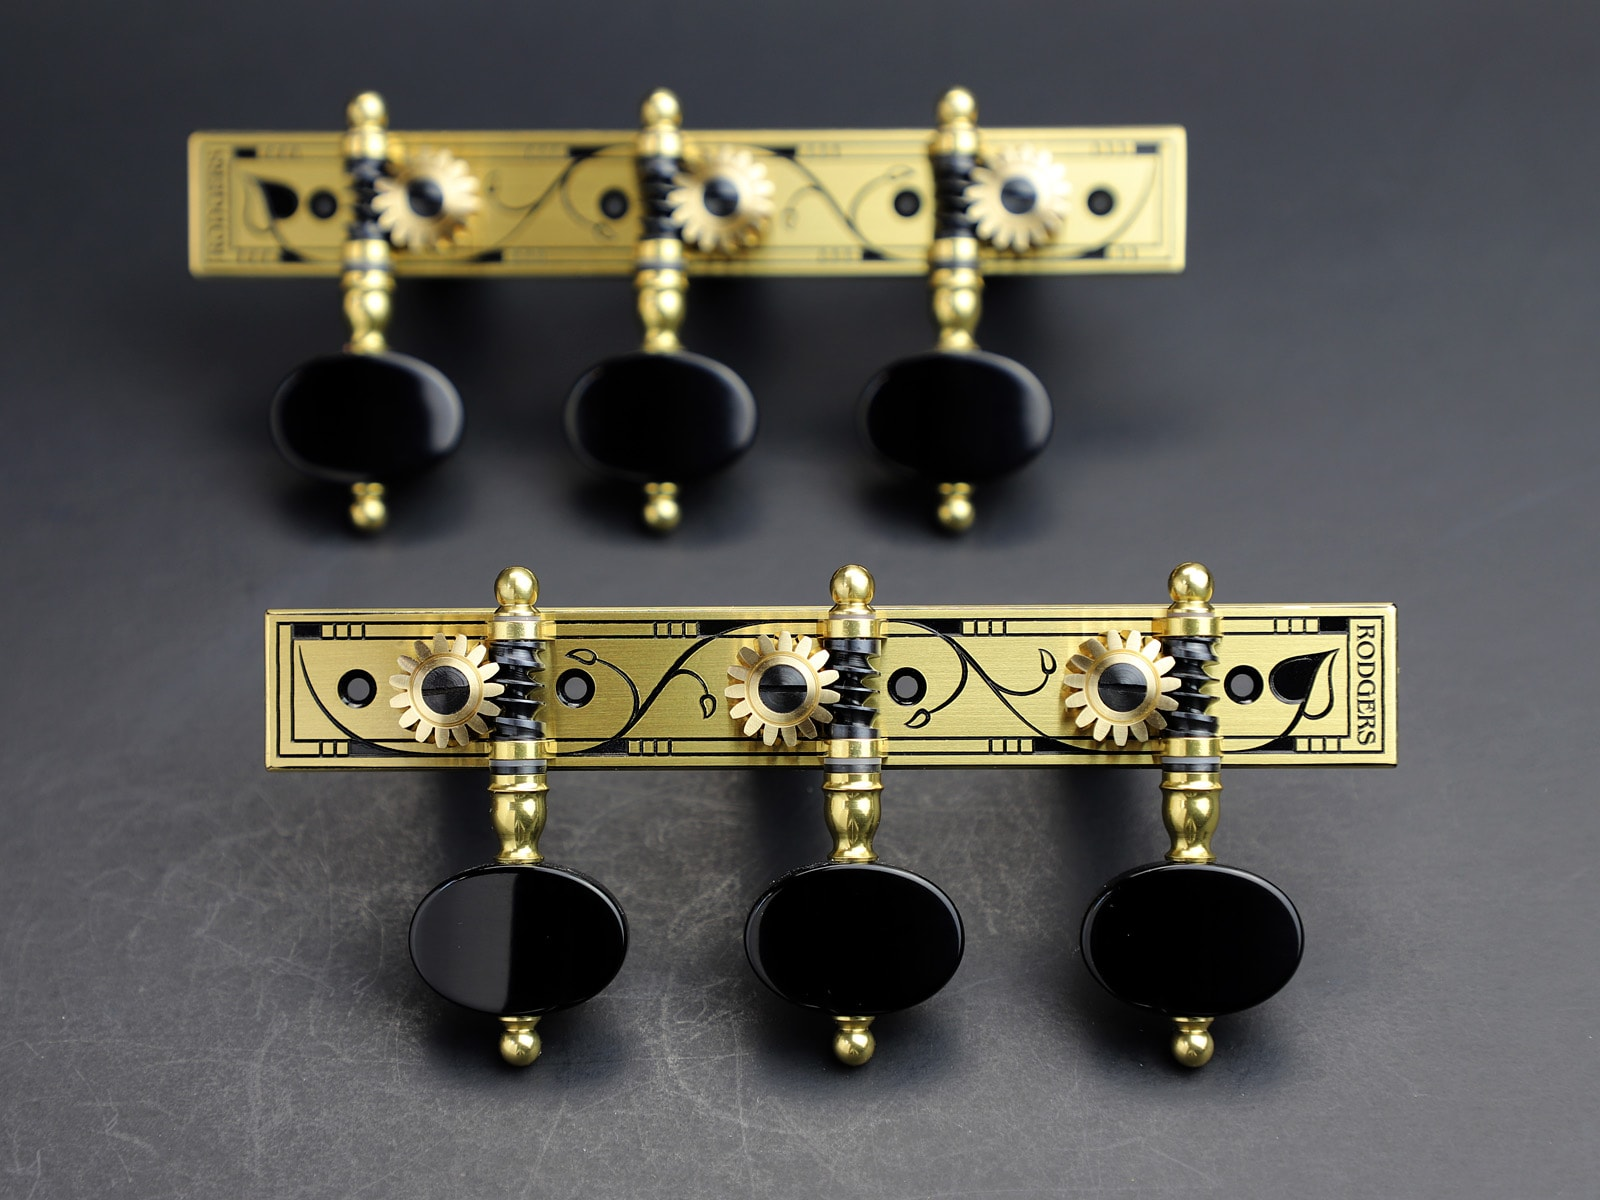 Rodgers Tuners L669 Brass Blackened Jet